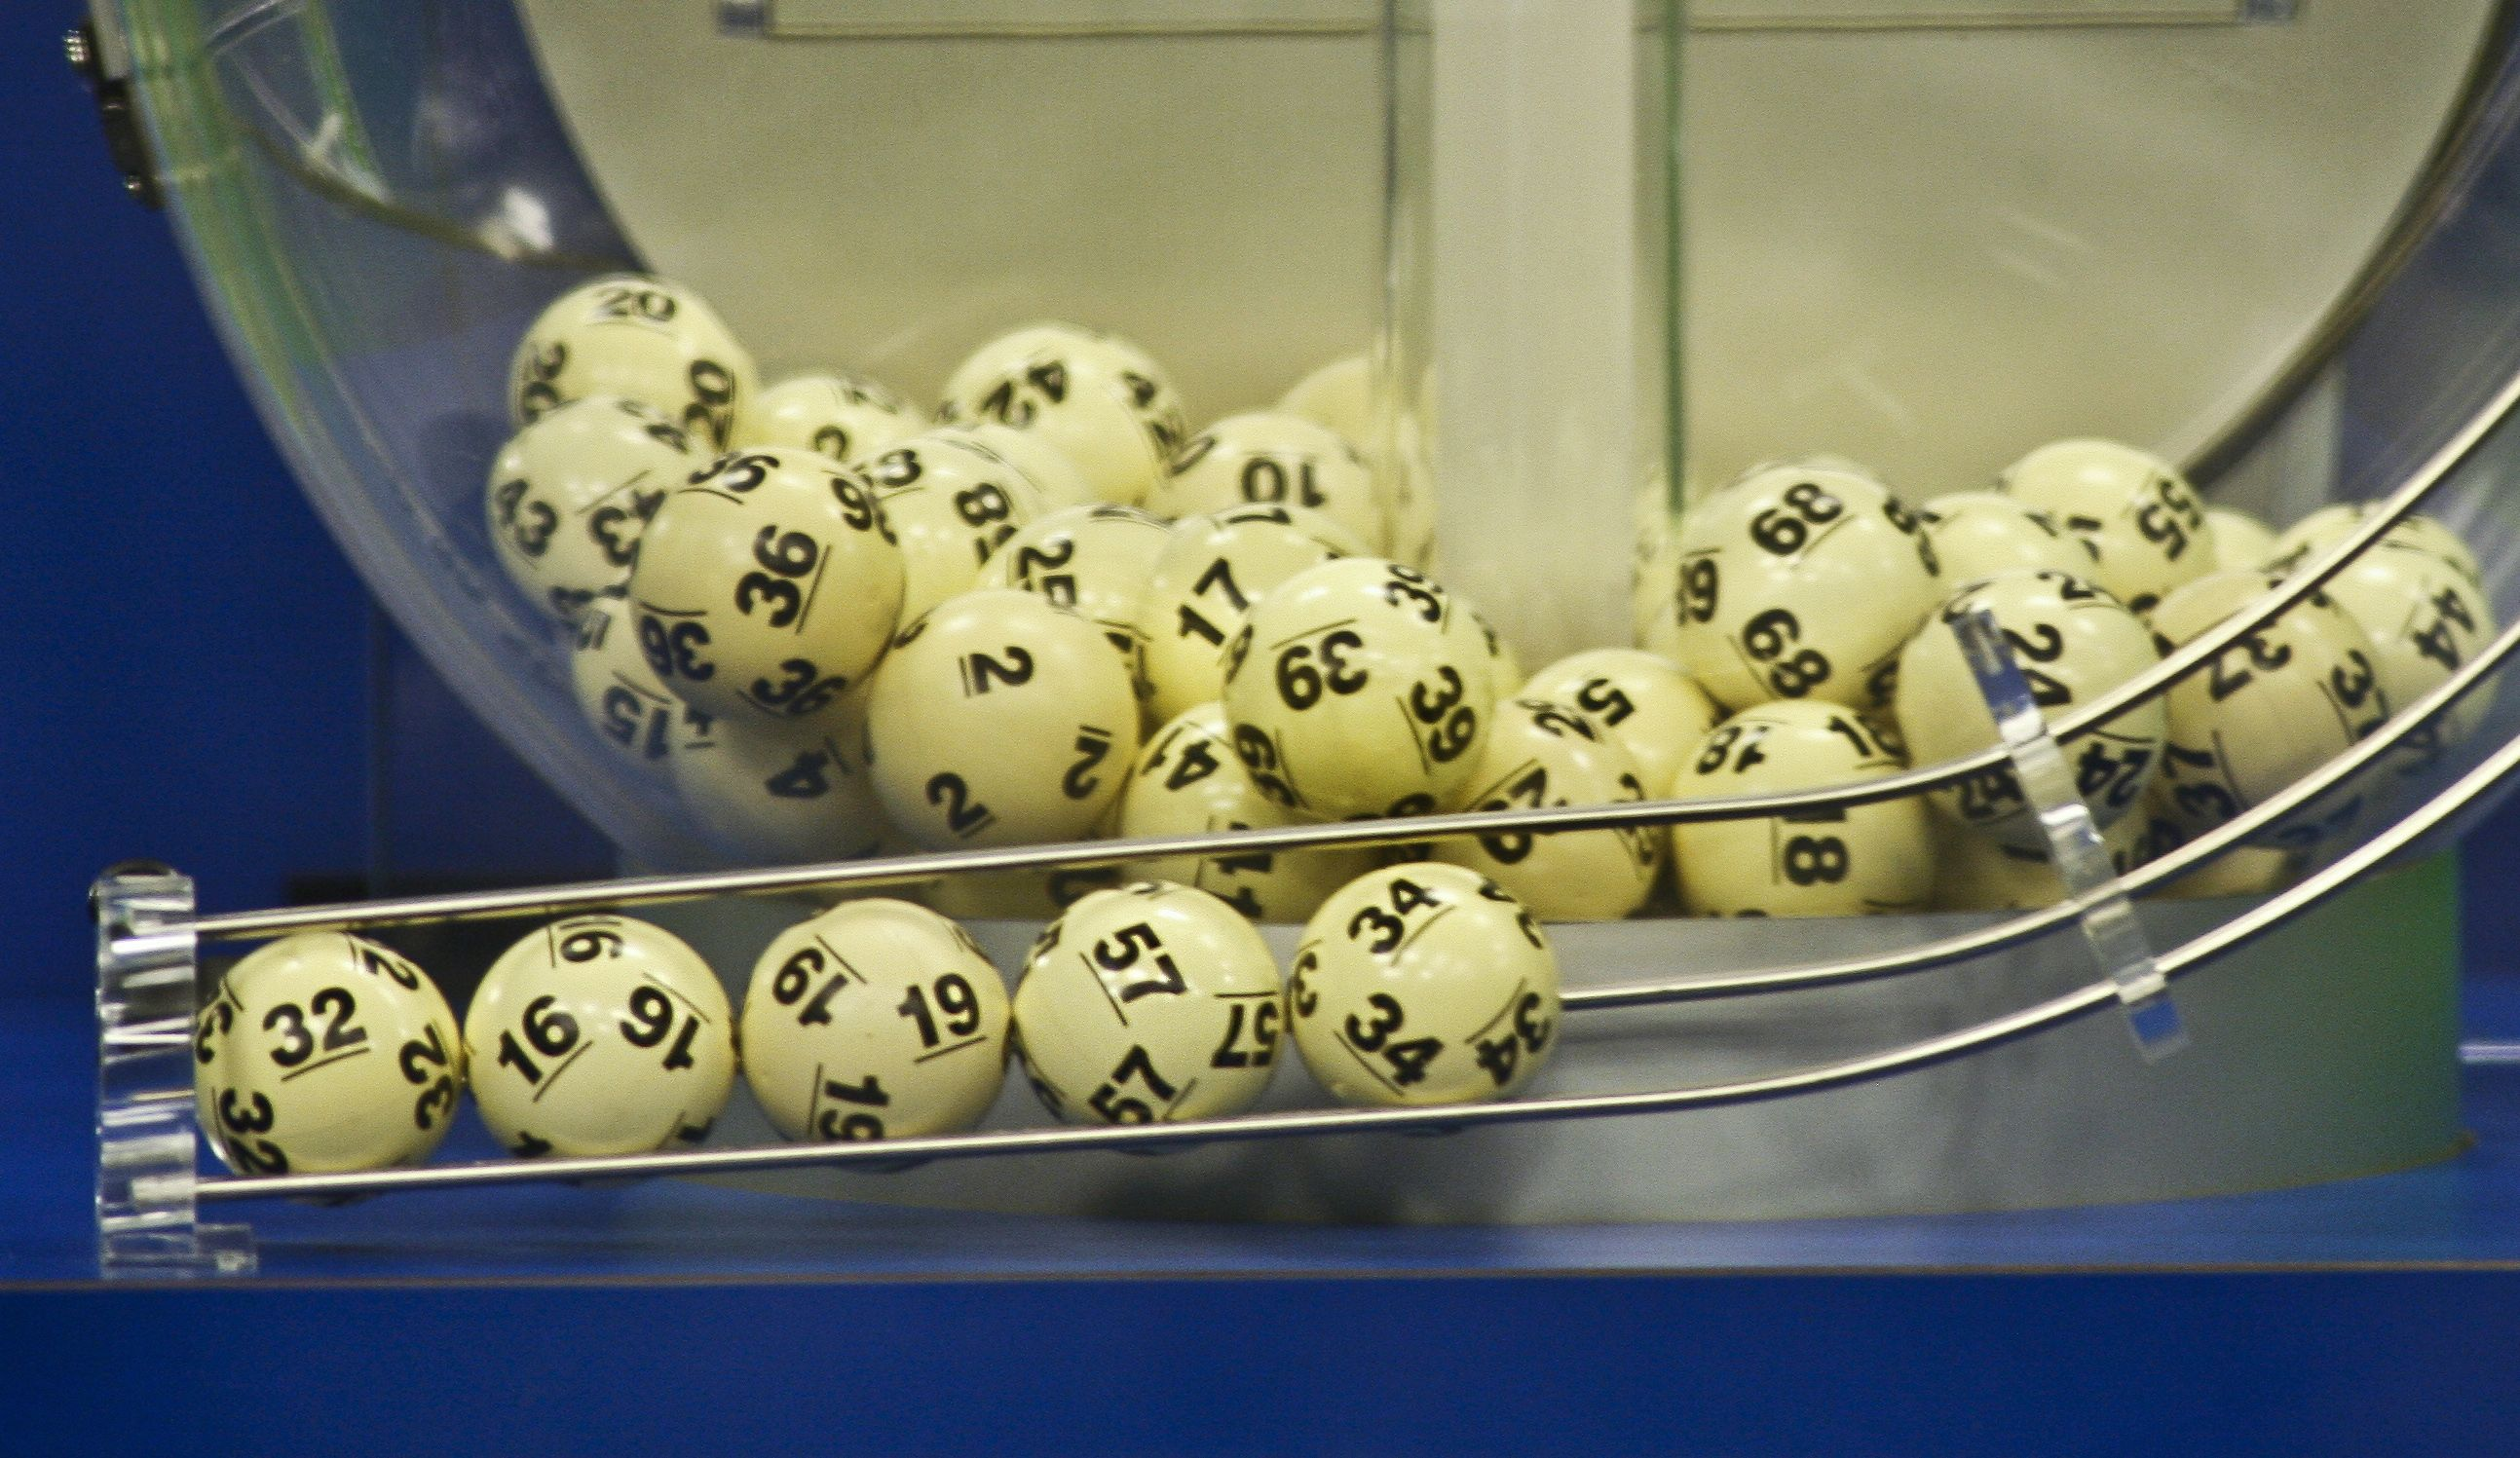 Lotto online | all the lotto jackpots of the world accessible